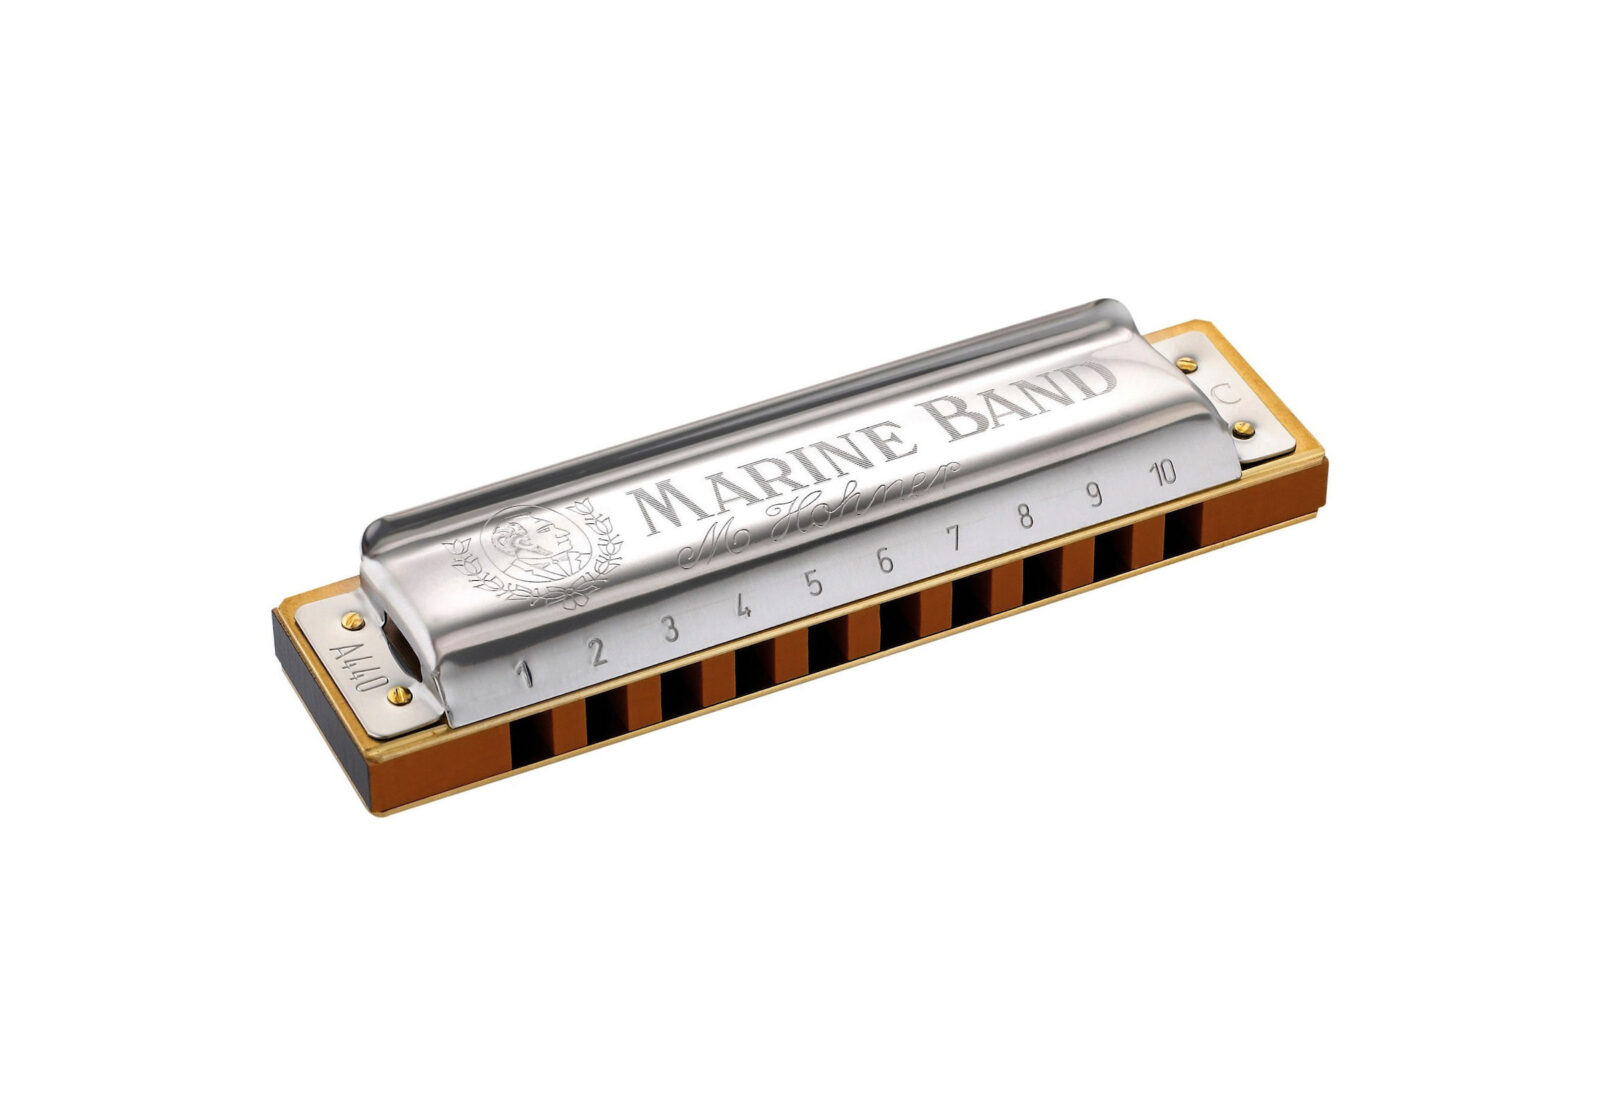 The Hohner Marine Band Harmonica - King of the Harps